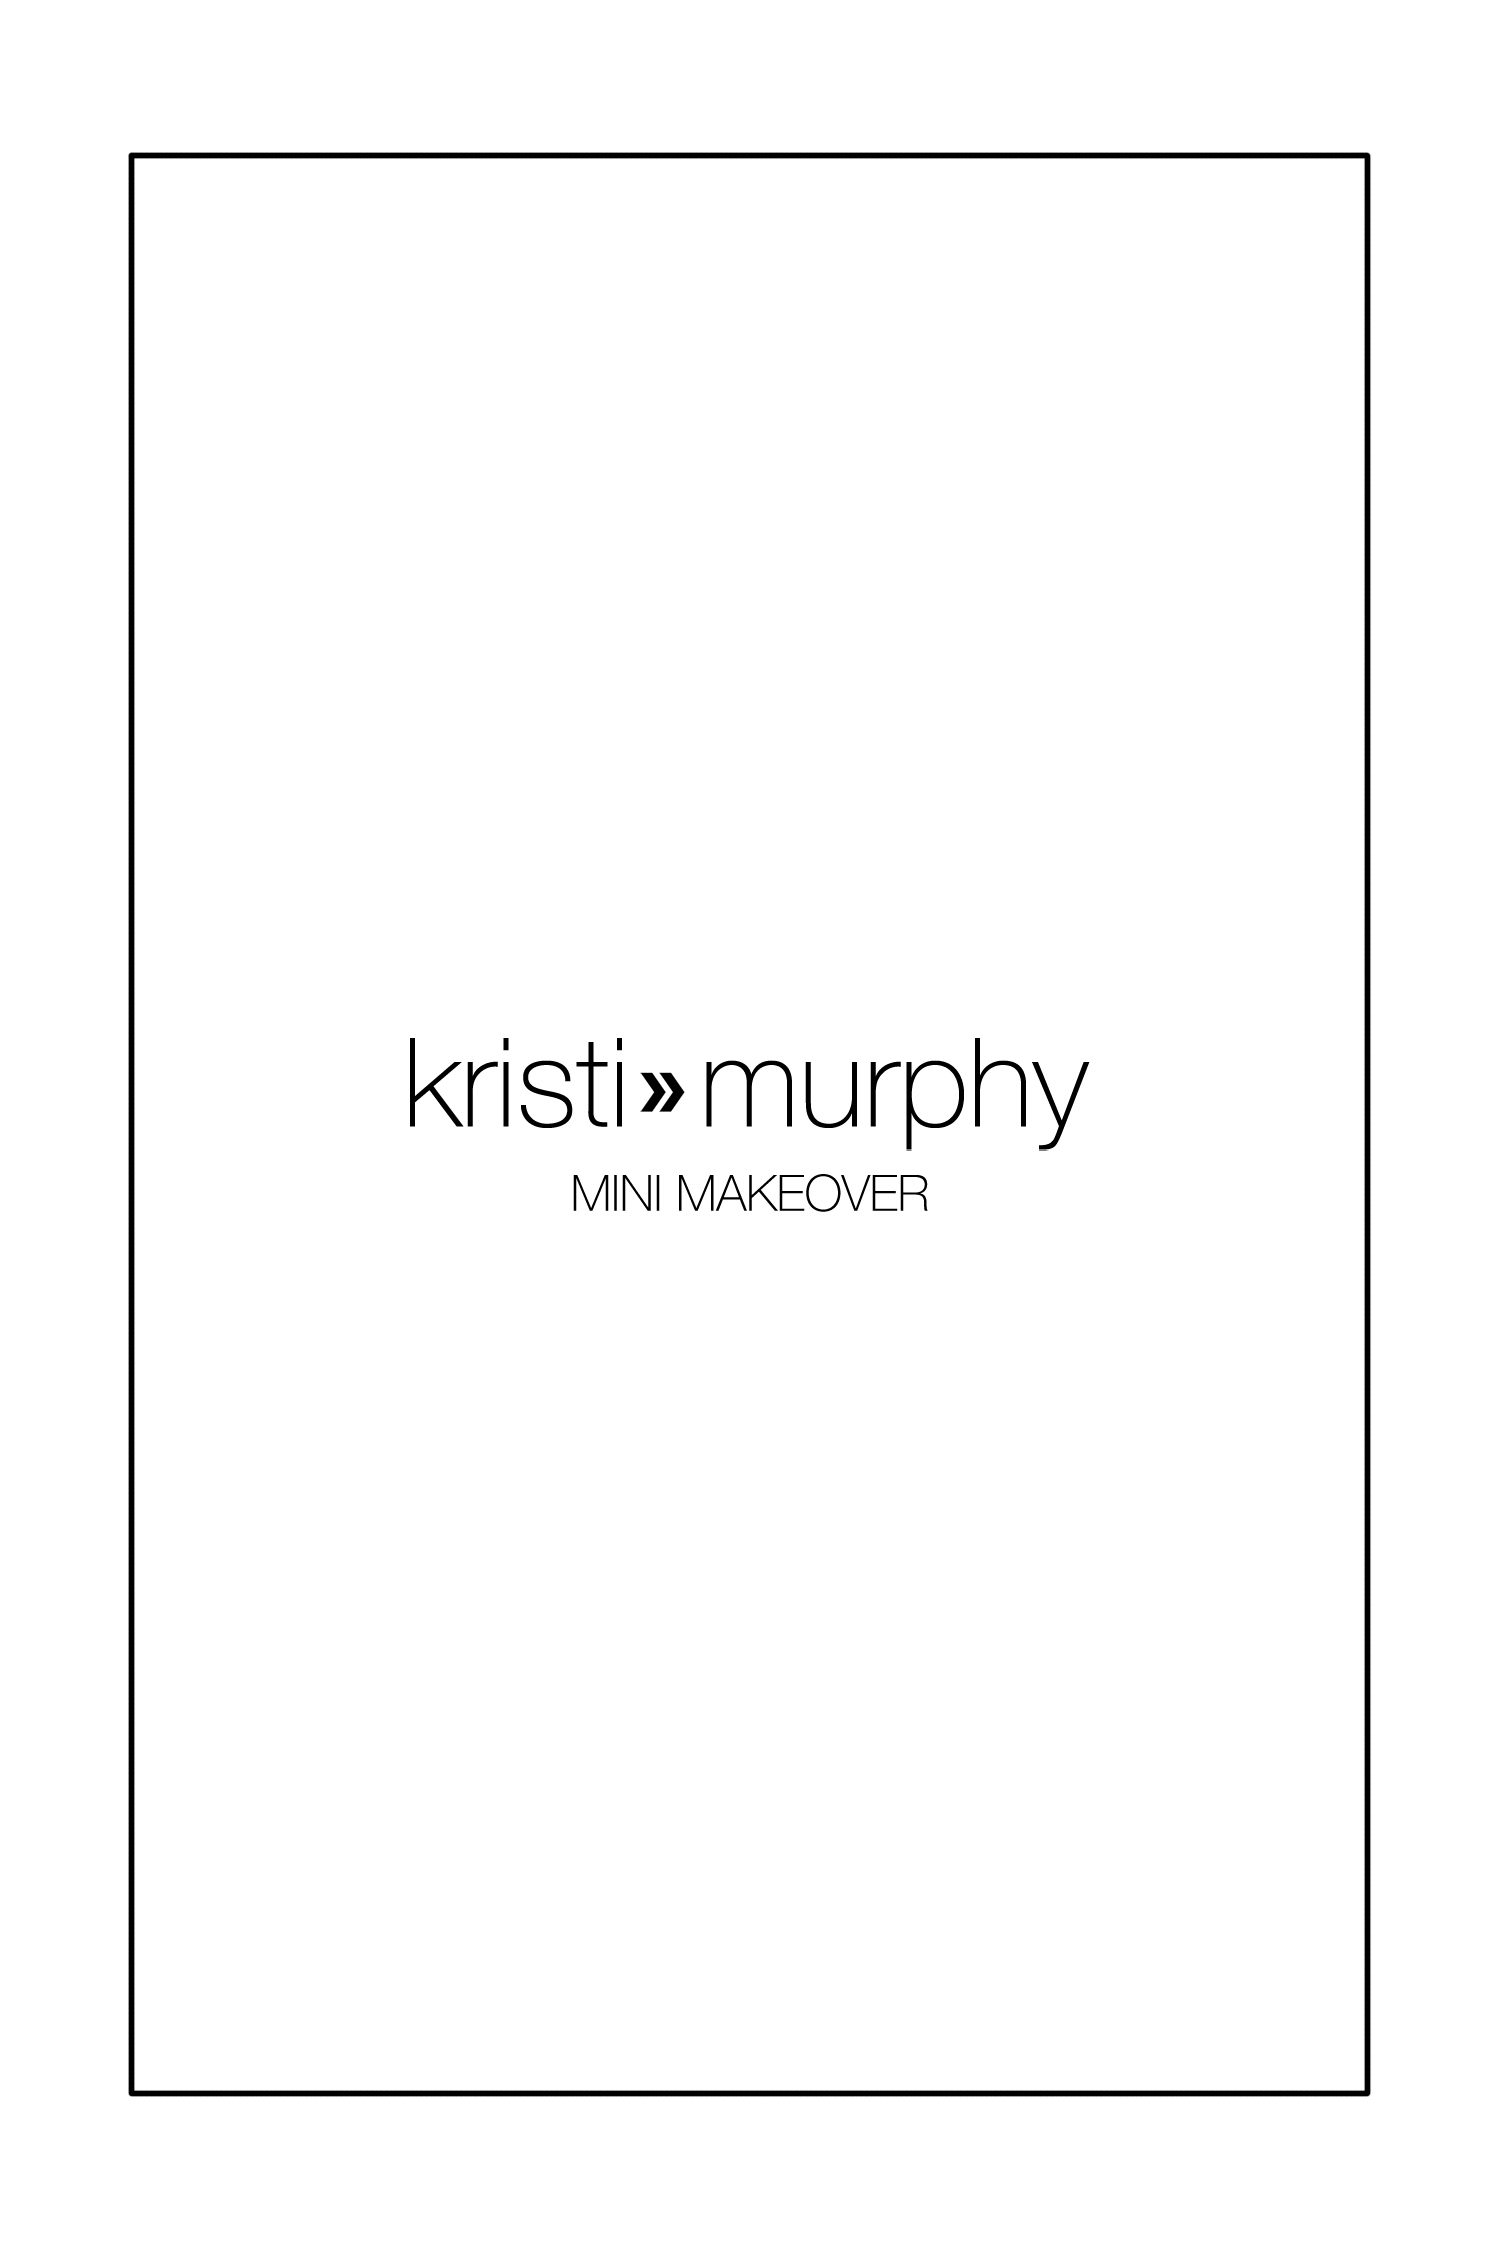 Kristi Murphy blog mini makeover